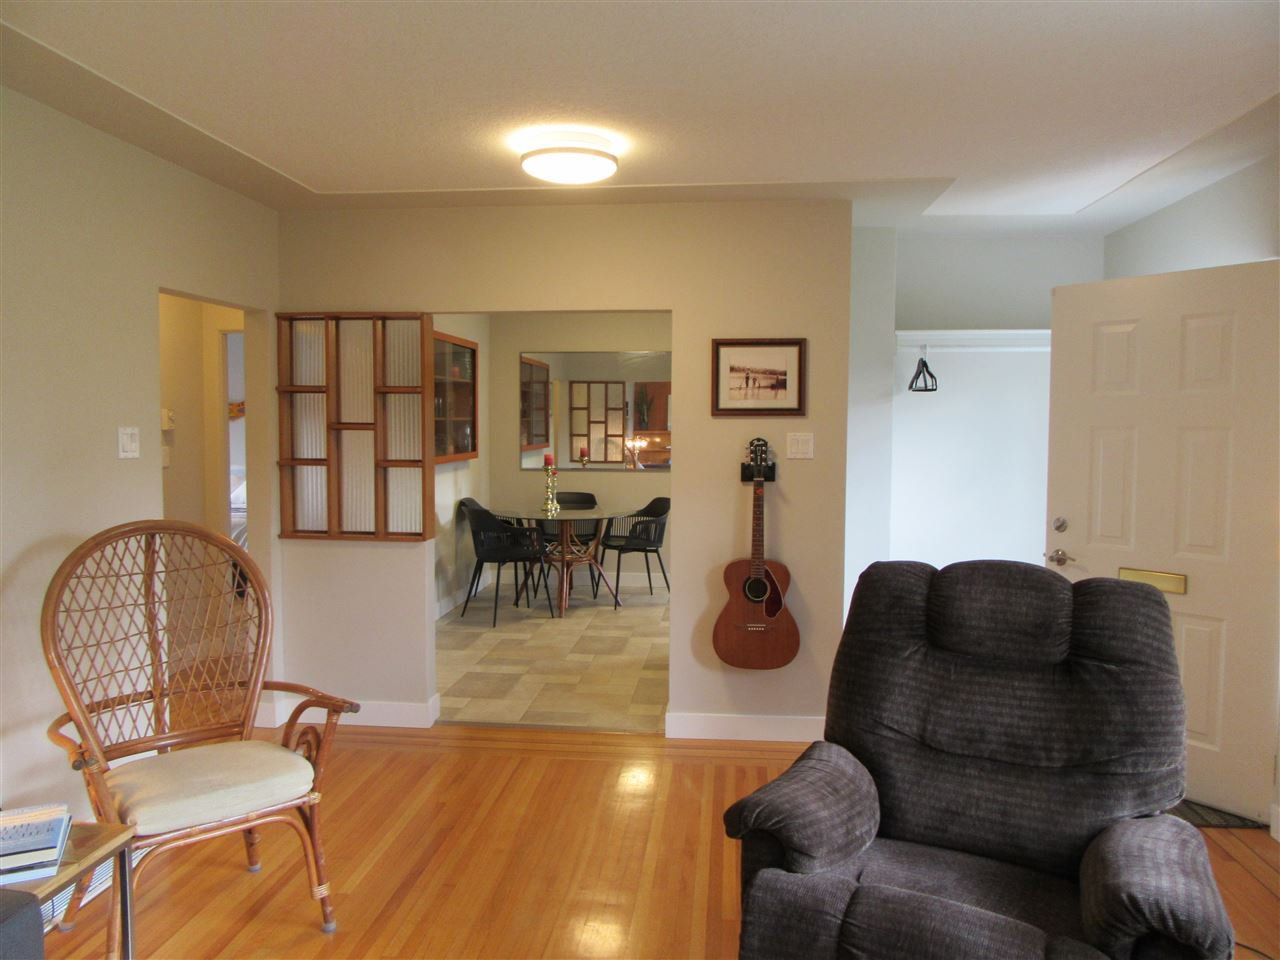 """Photo 28: Photos: 121 FREEMAN Street in Prince George: Nechako View House for sale in """"NECHAKO"""" (PG City Central (Zone 72))  : MLS®# R2493268"""